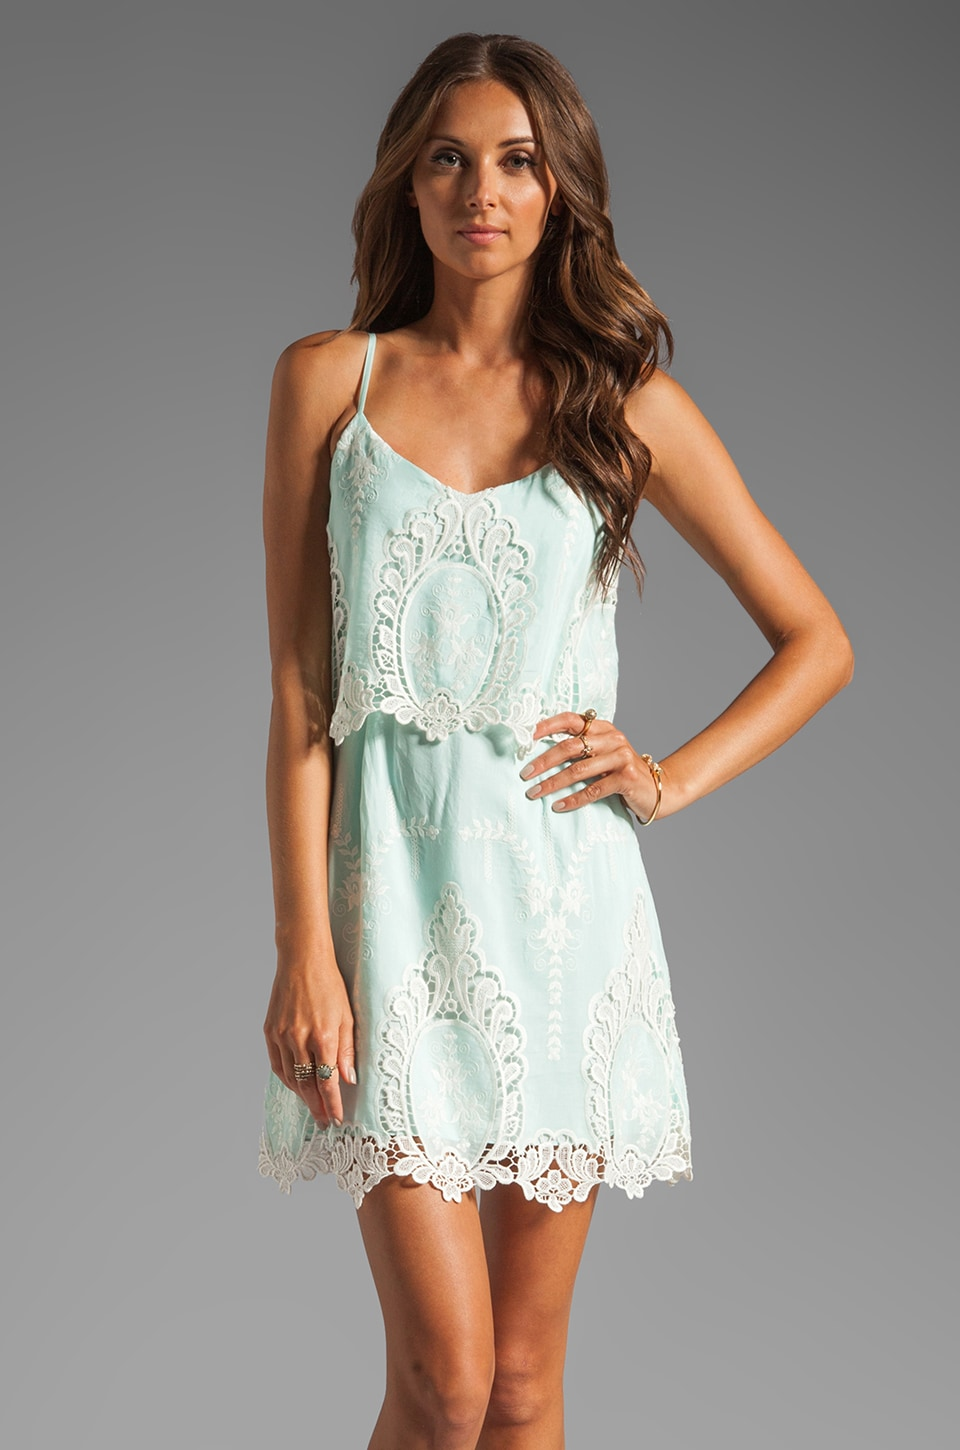 Dolce Vita Jeralyn Dress in Mint